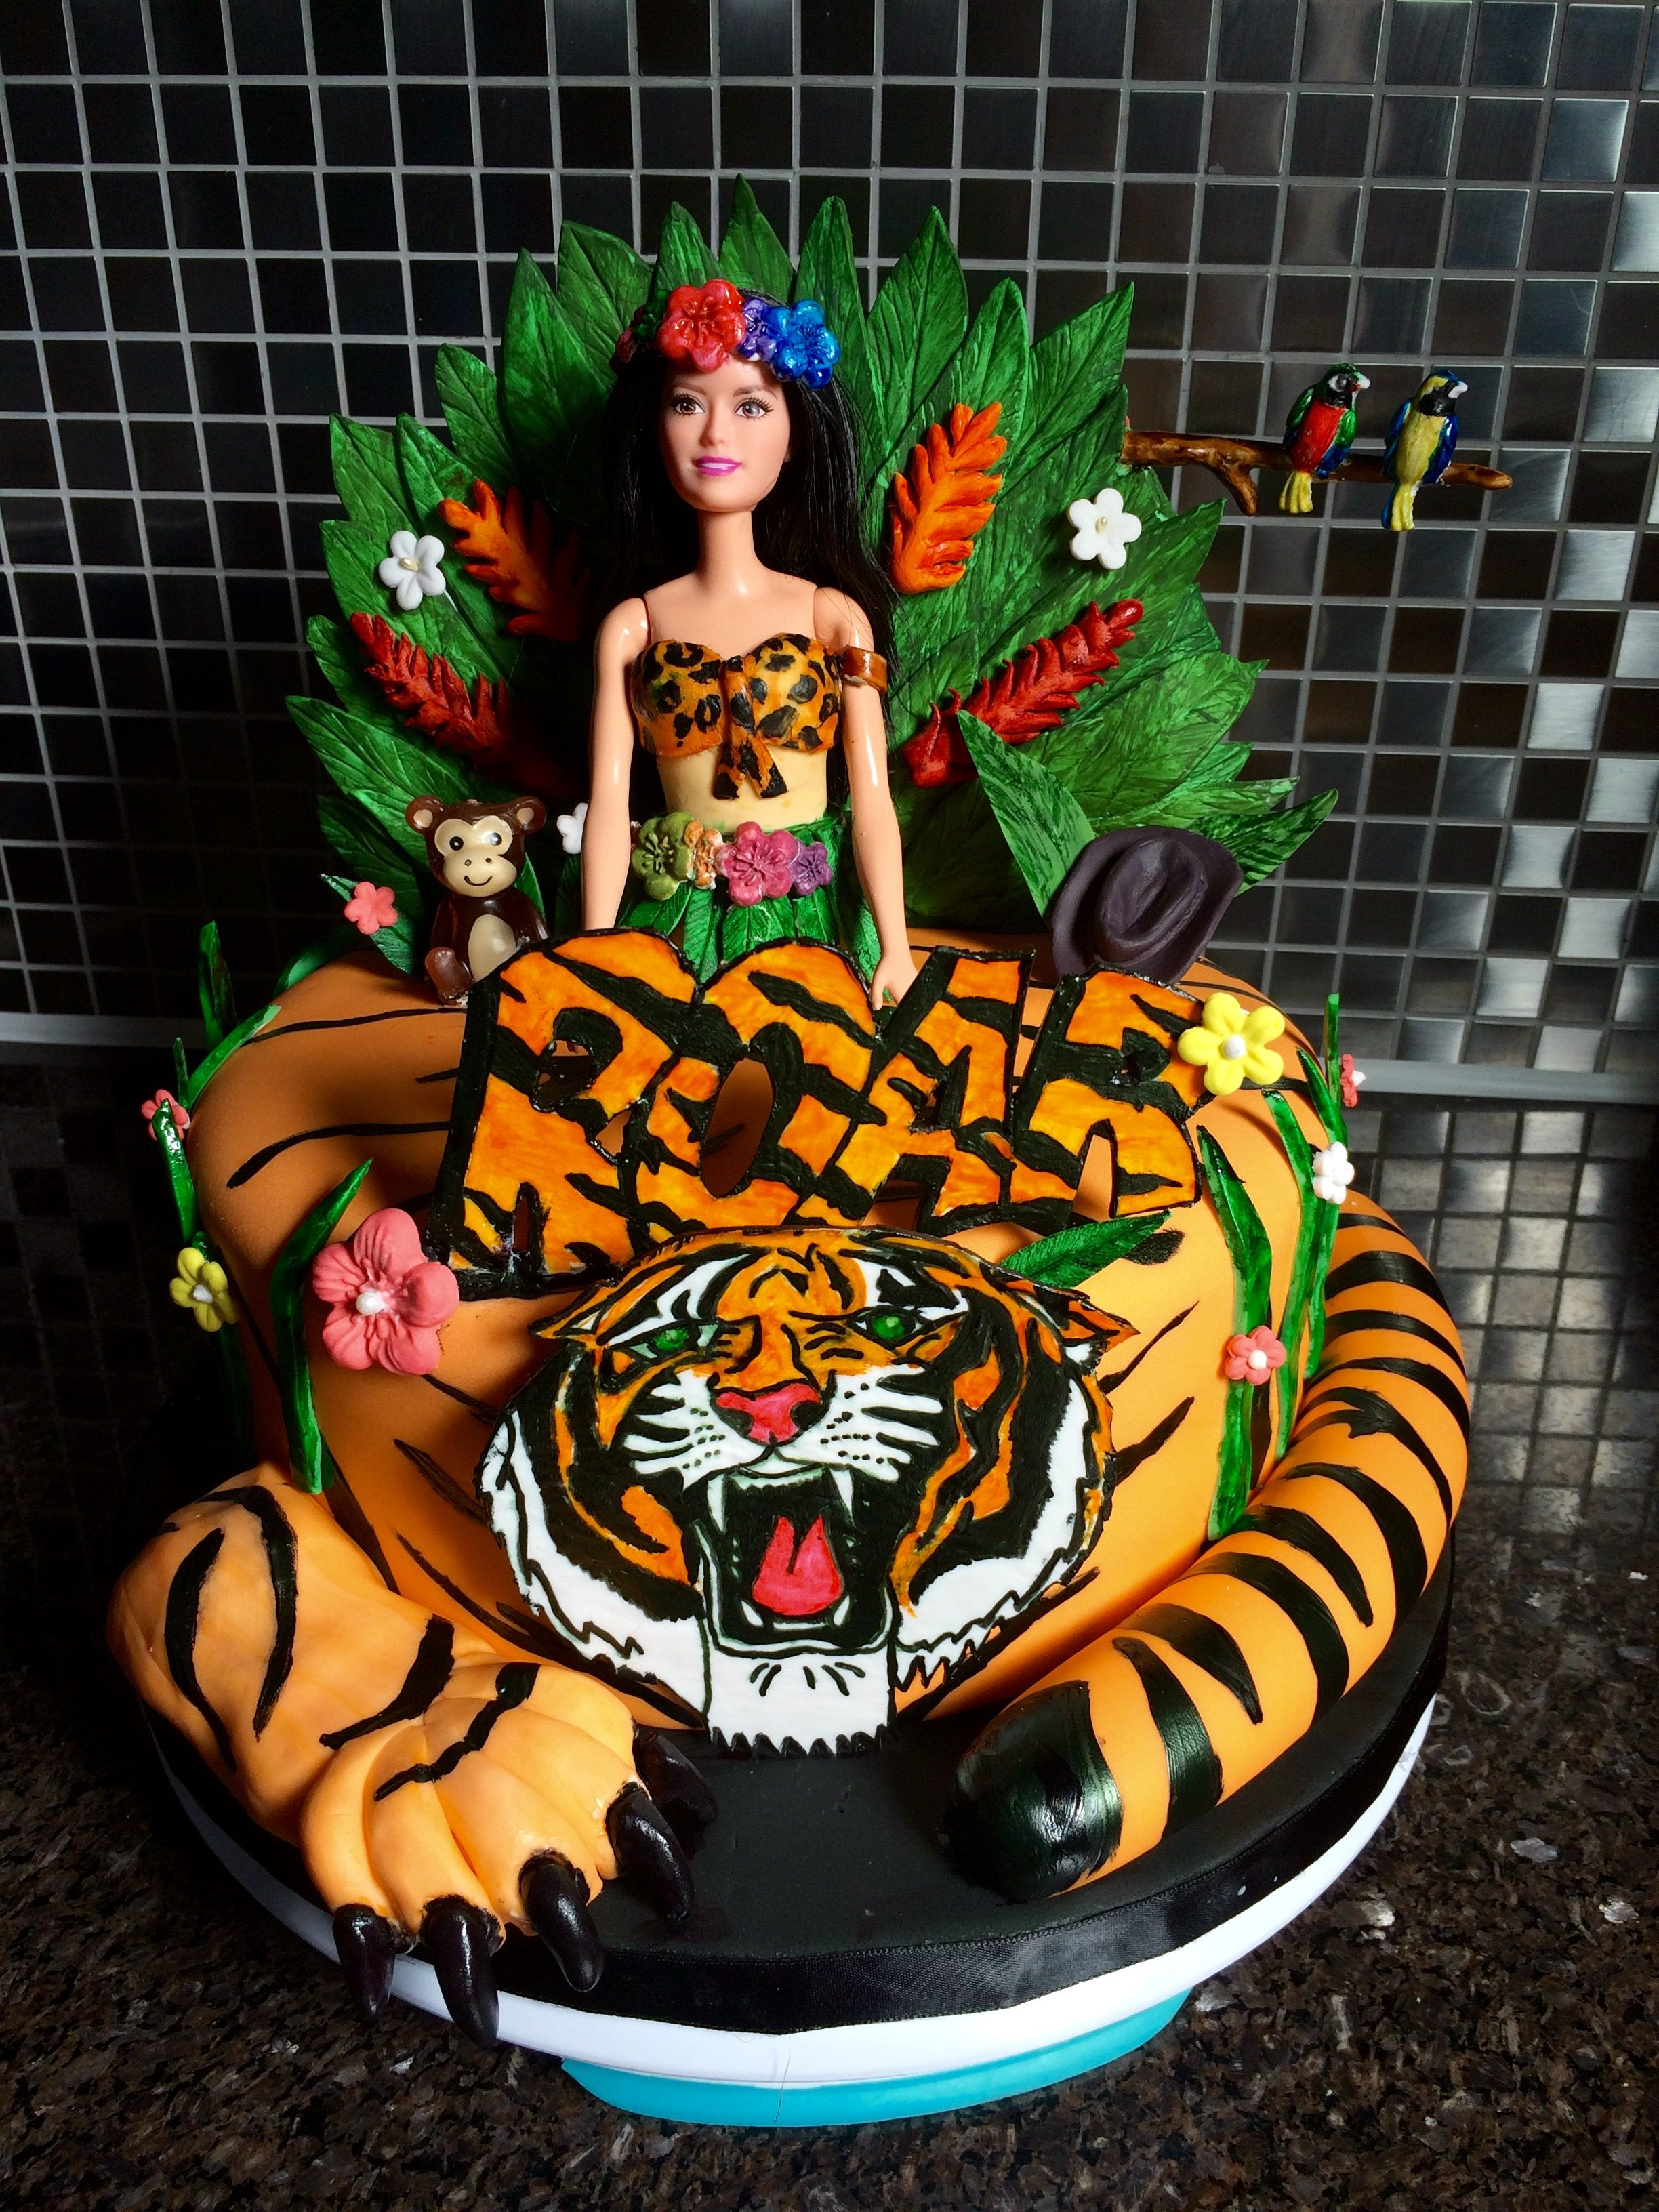 Groovy Katy Perry Roar Cake I Made For My Daughter Katie With Images Personalised Birthday Cards Veneteletsinfo